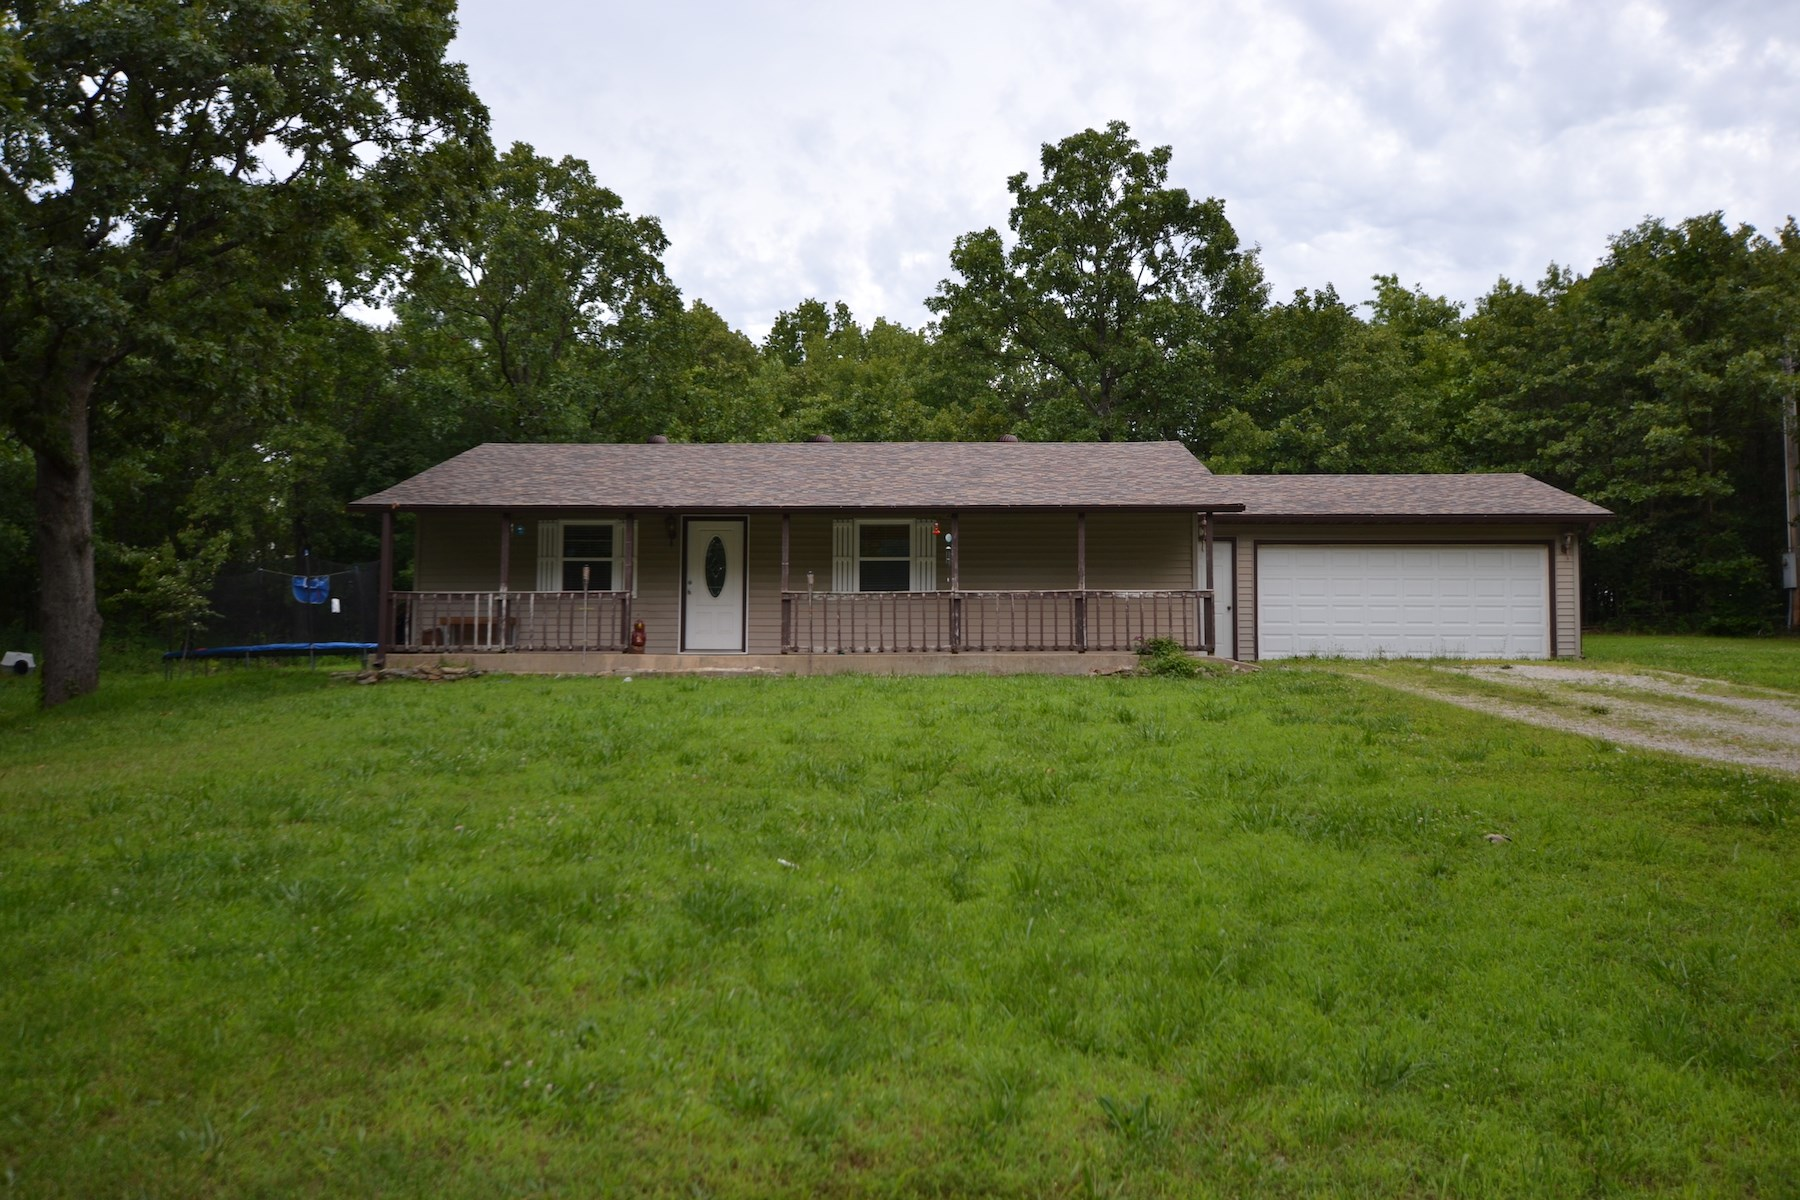 Country Home on 2 Acres m/l in West Plains, Missouri